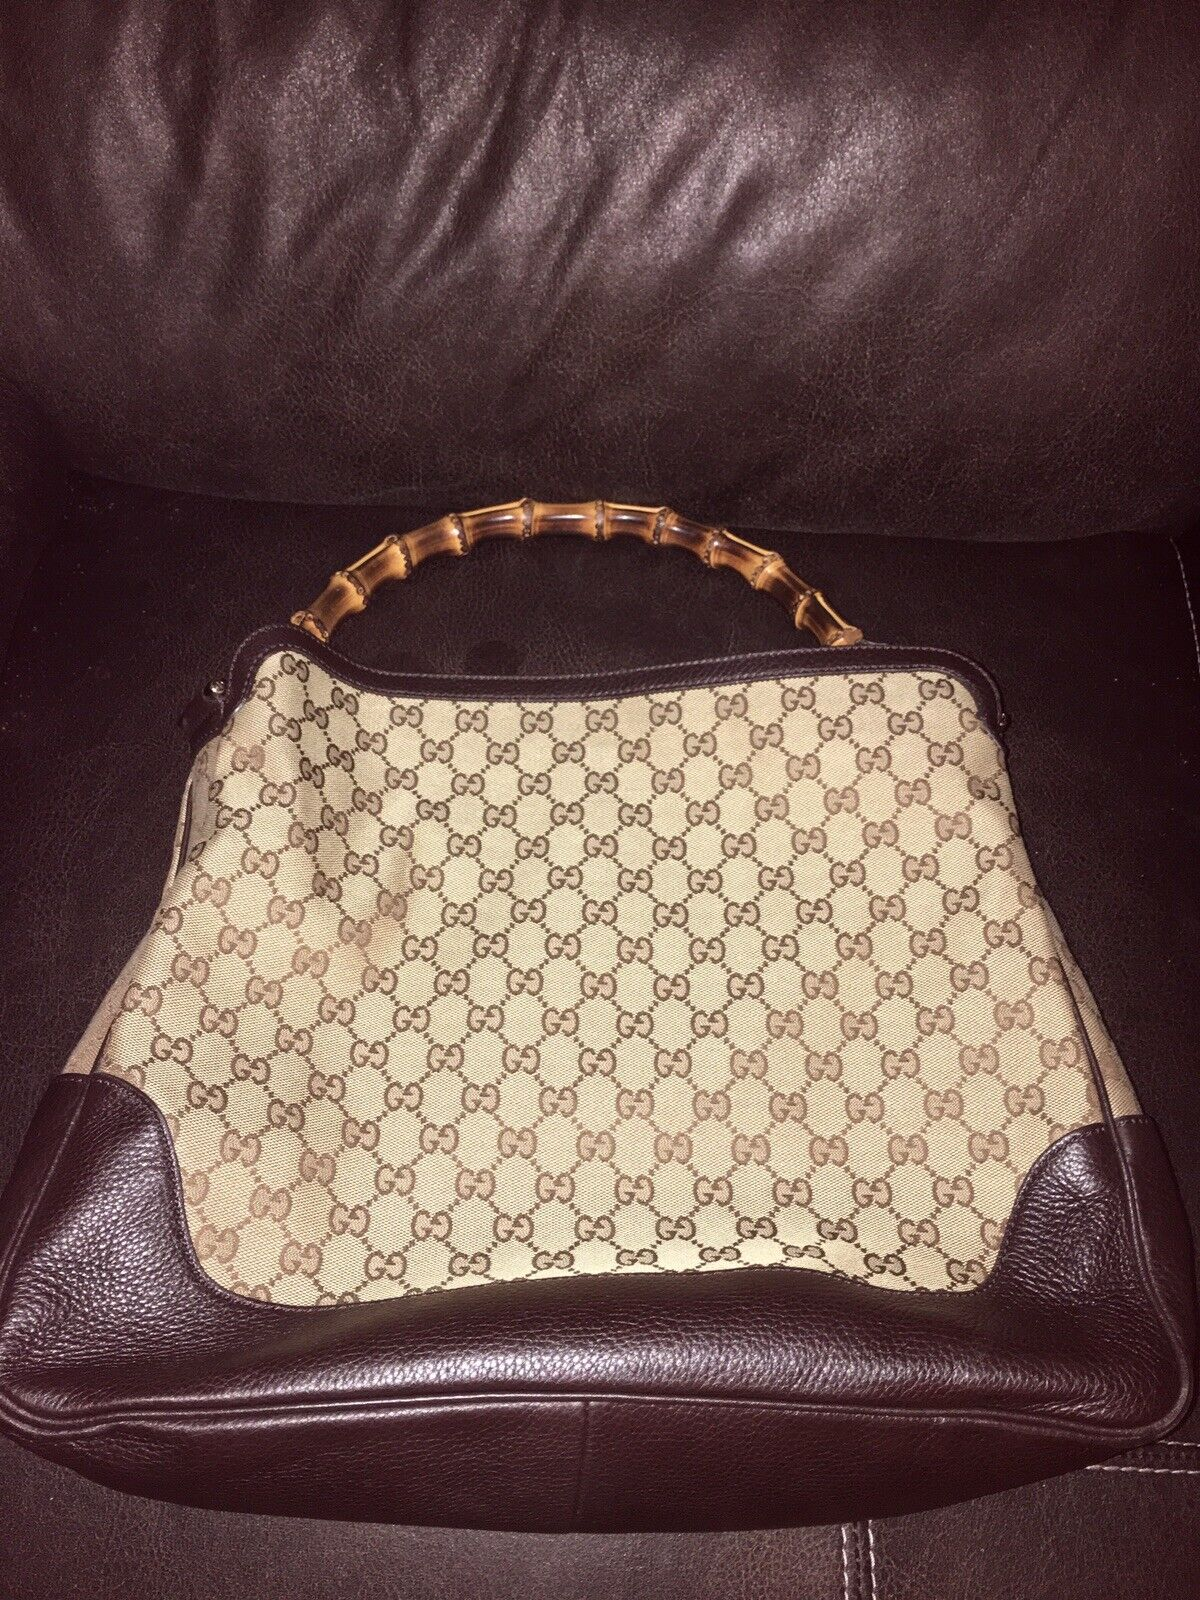 WOMENS GUCCI DIANA BAG/PURSE WITH BAMBOO HANDLE, … - image 7